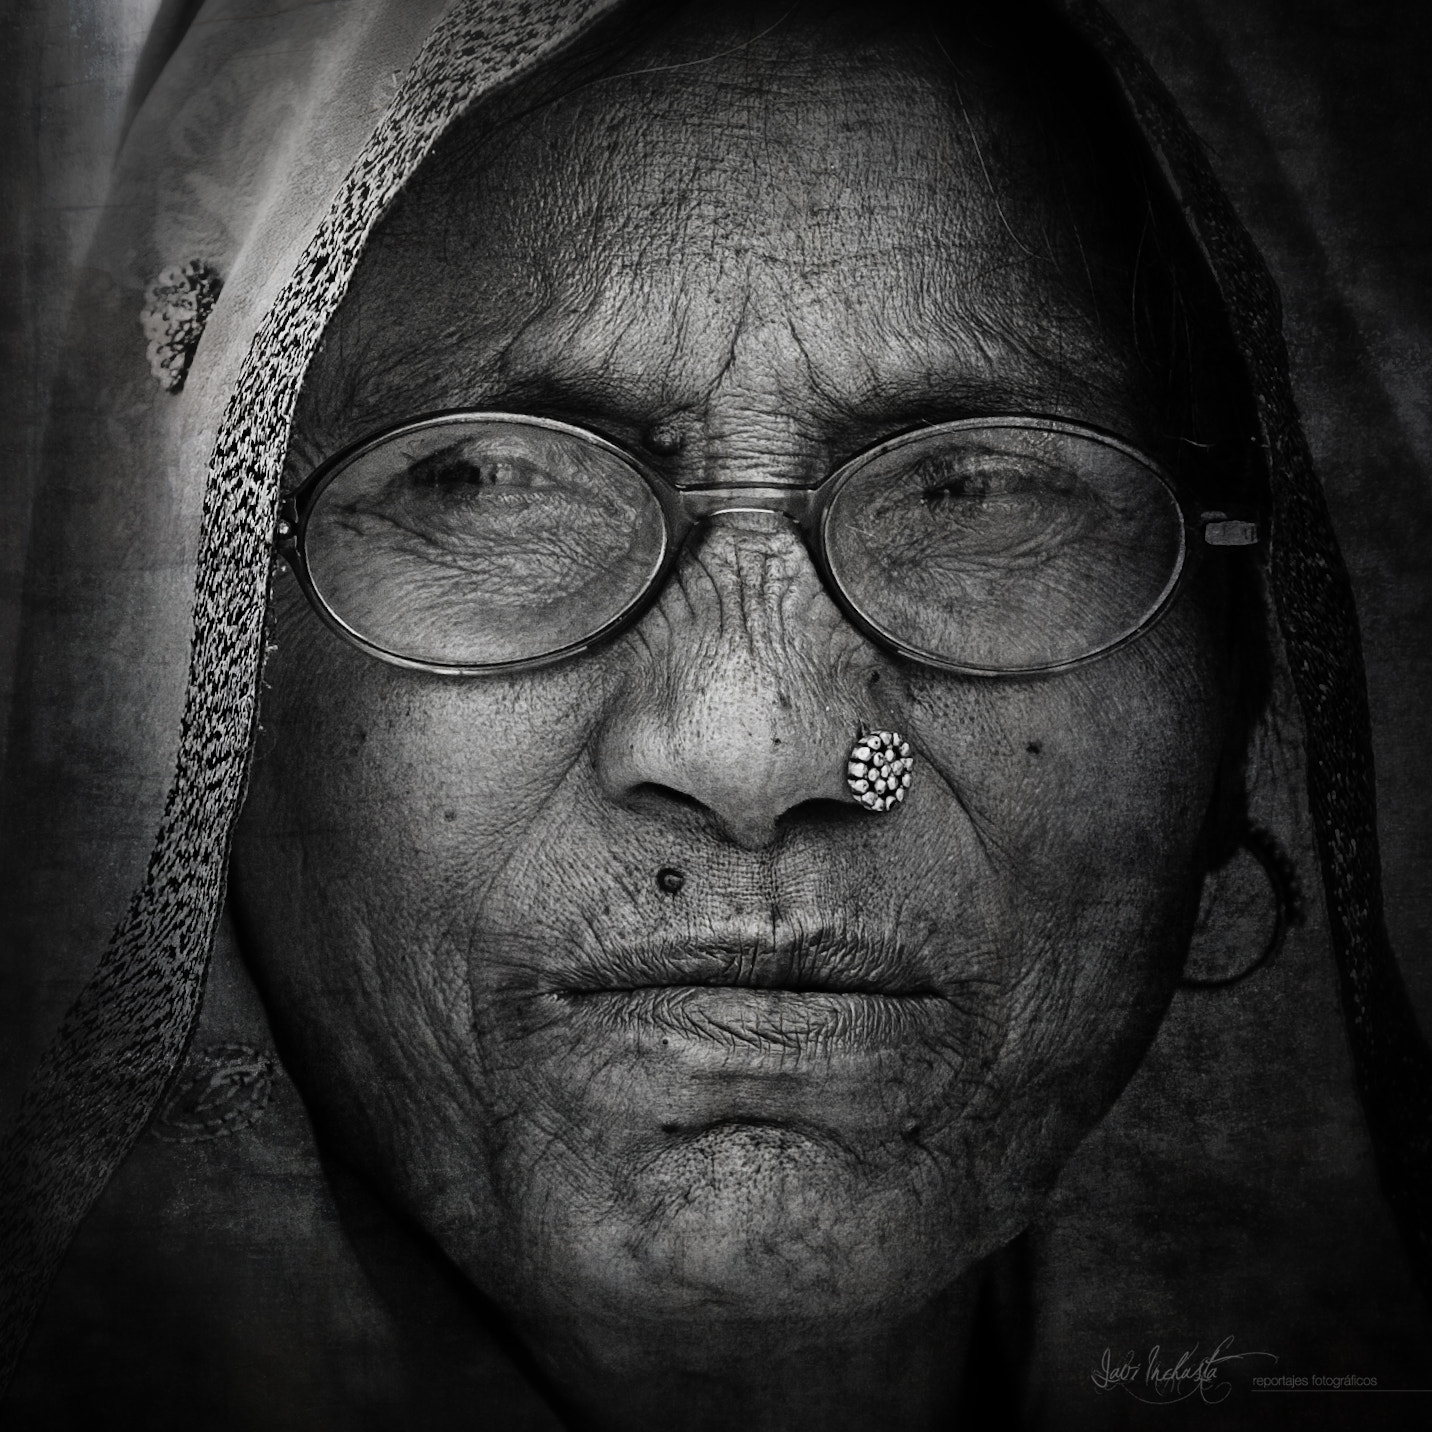 Photograph Sumedha by Javi Inchusta on 500px